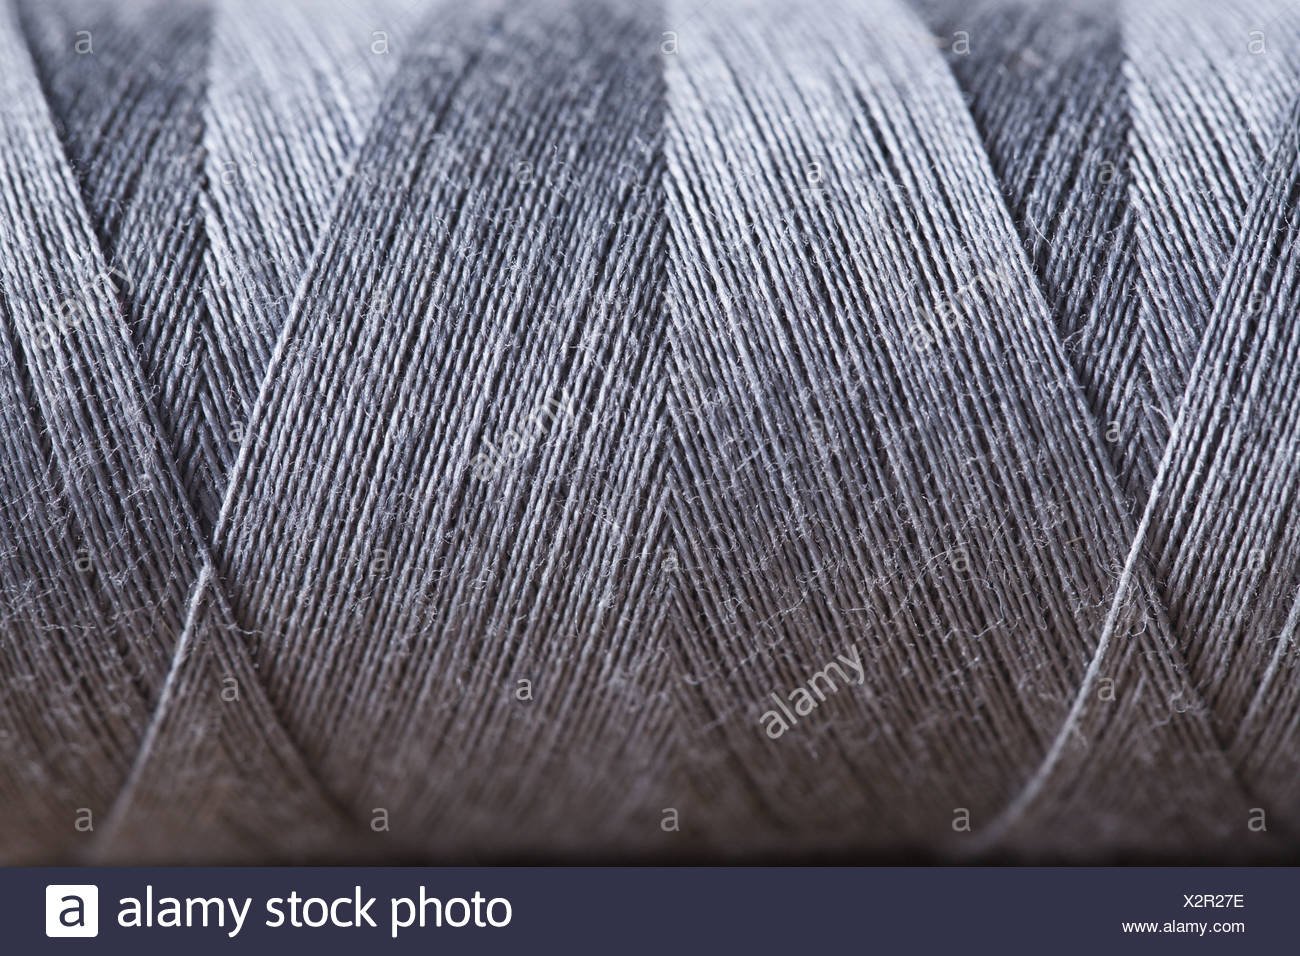 Close-up view of silver string spool - Stock Image